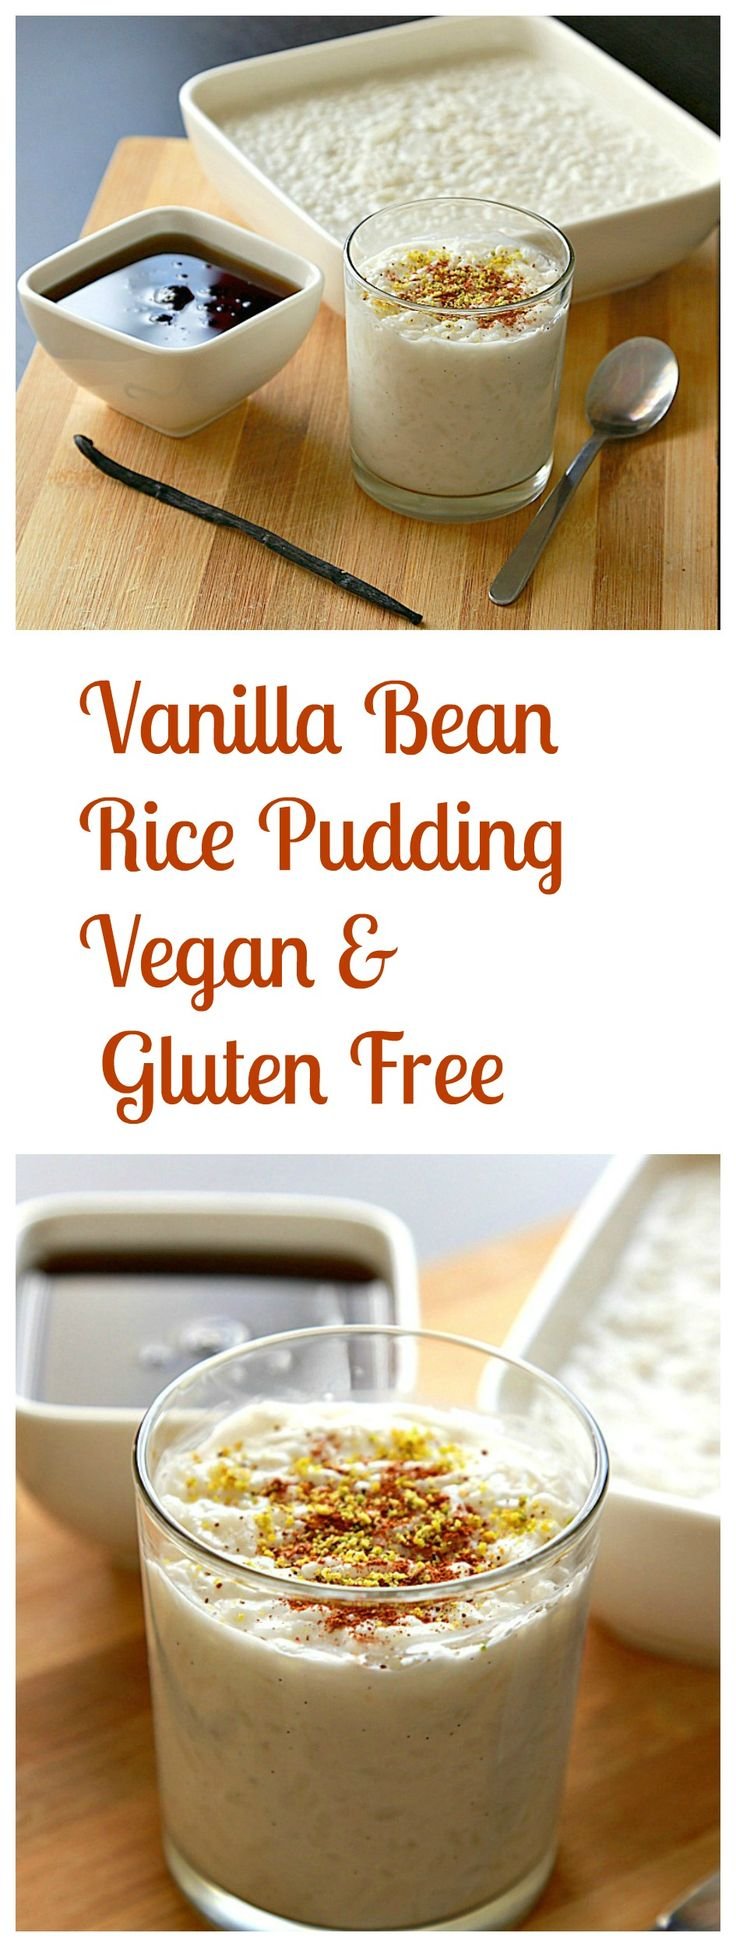 This smooth silky creamy rice pudding is flavored with vanilla bean. It's very healthy, vegan, refined sugar free, and gluten free too!